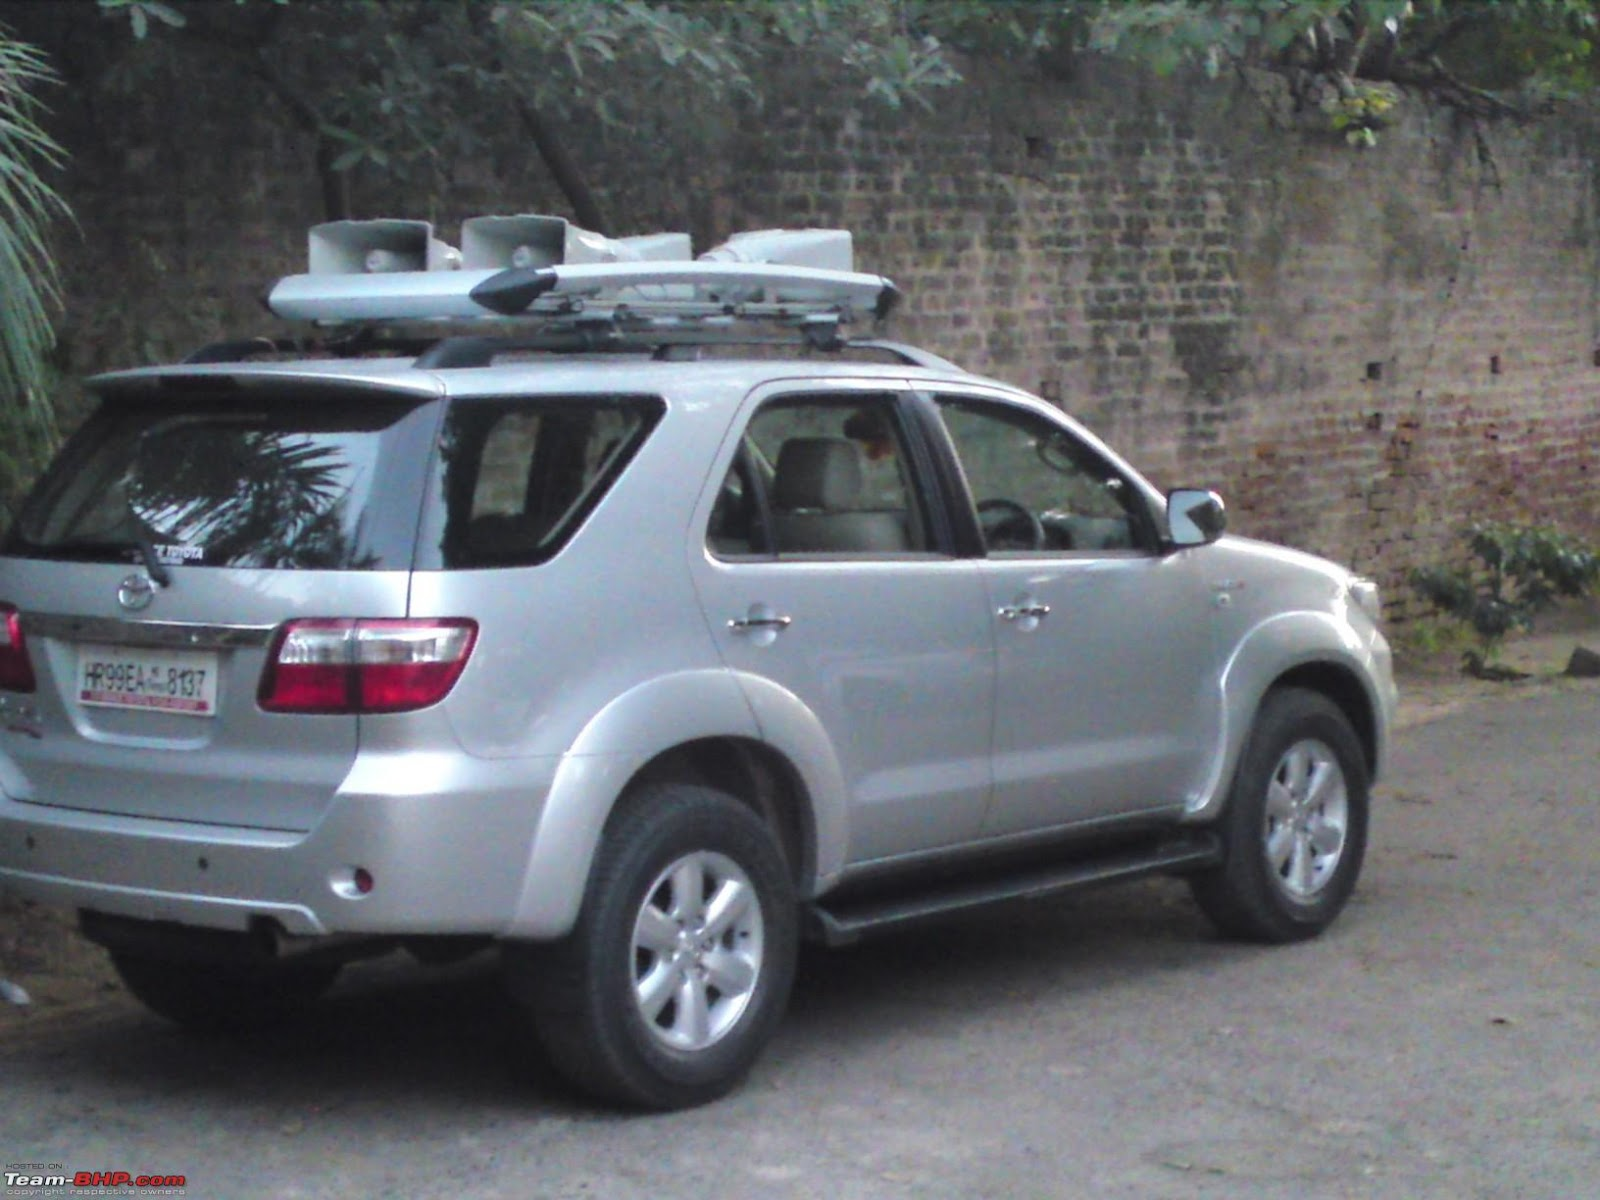 Best Toyota Fortuner Wallpapers Part 7 Best Cars Hd Wallpapers